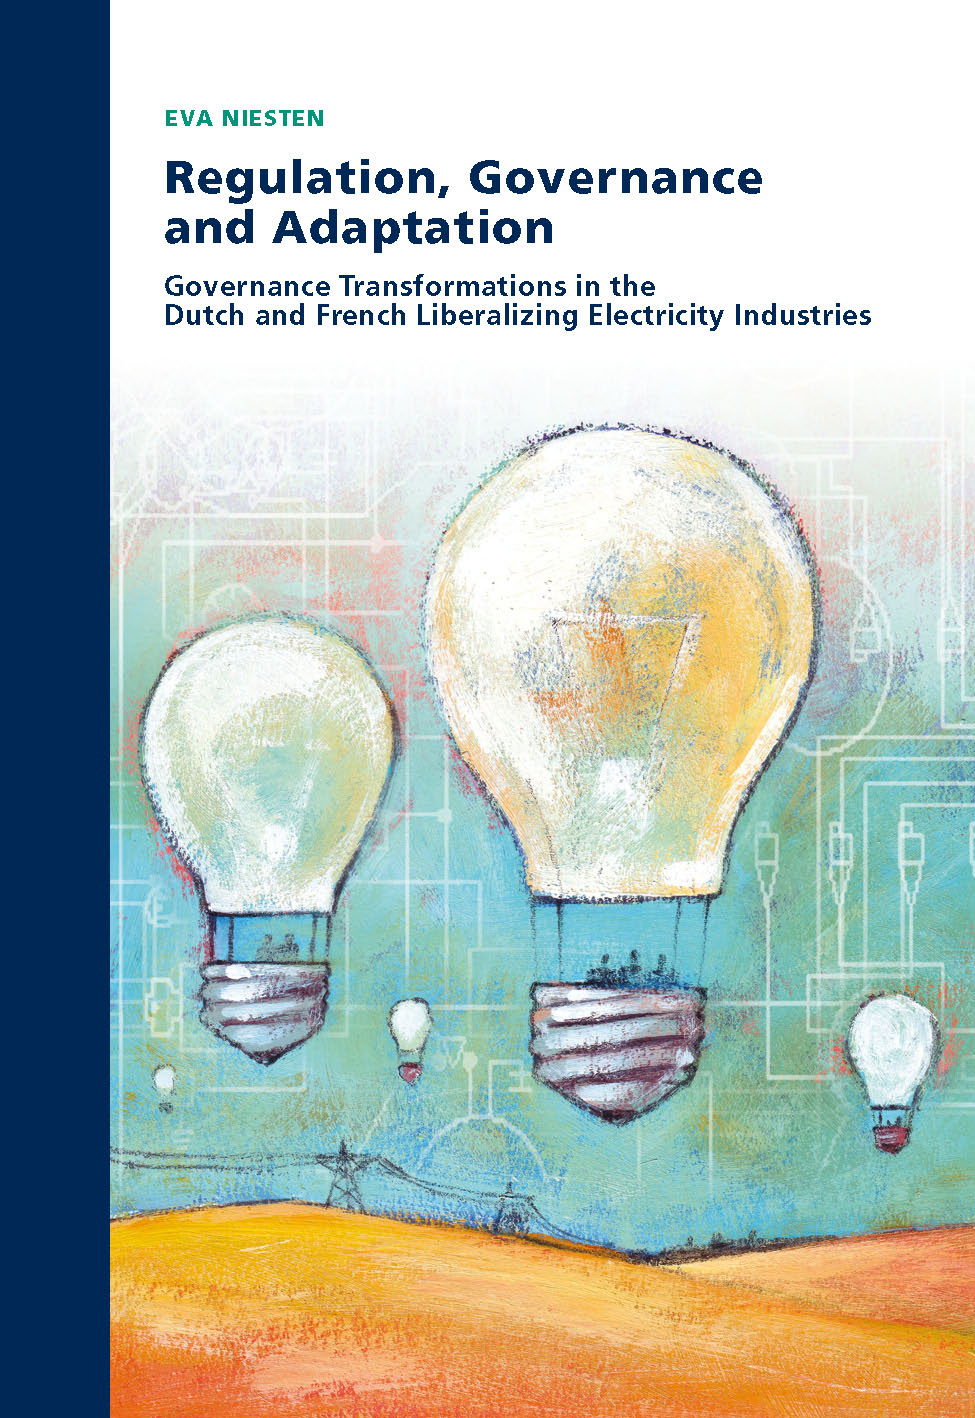 Regulation, Governance and Adaptation: Governance transformations in the Dutch and French liberalizing electricity industries